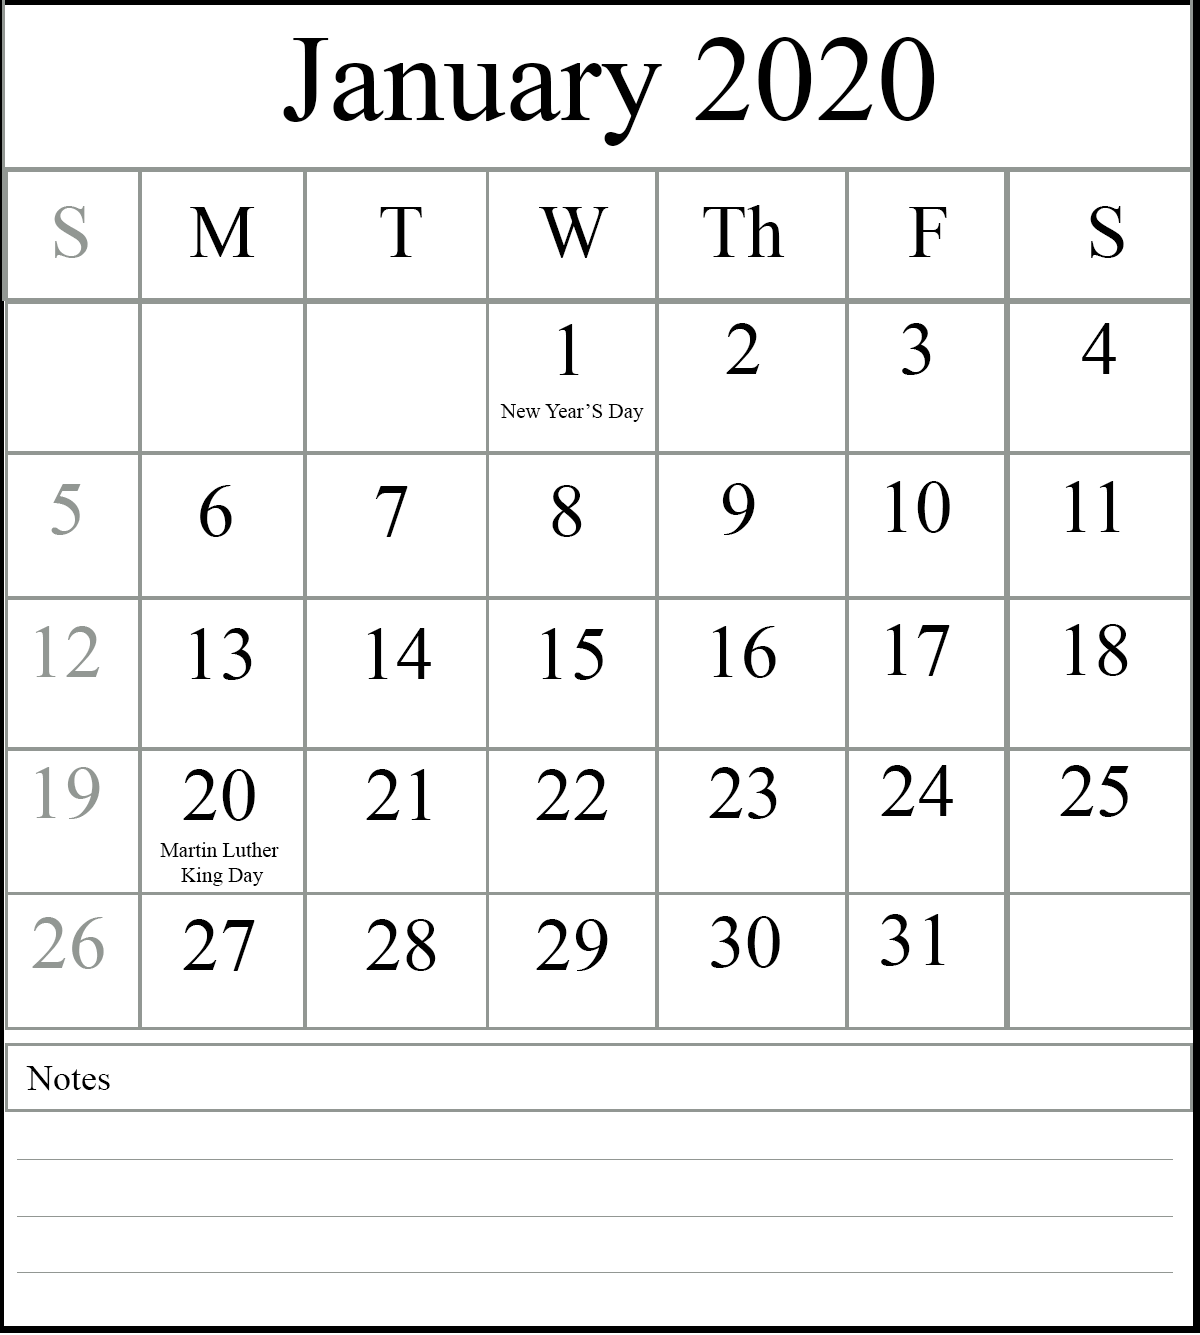 Blank Calendar For January 2020 Notes